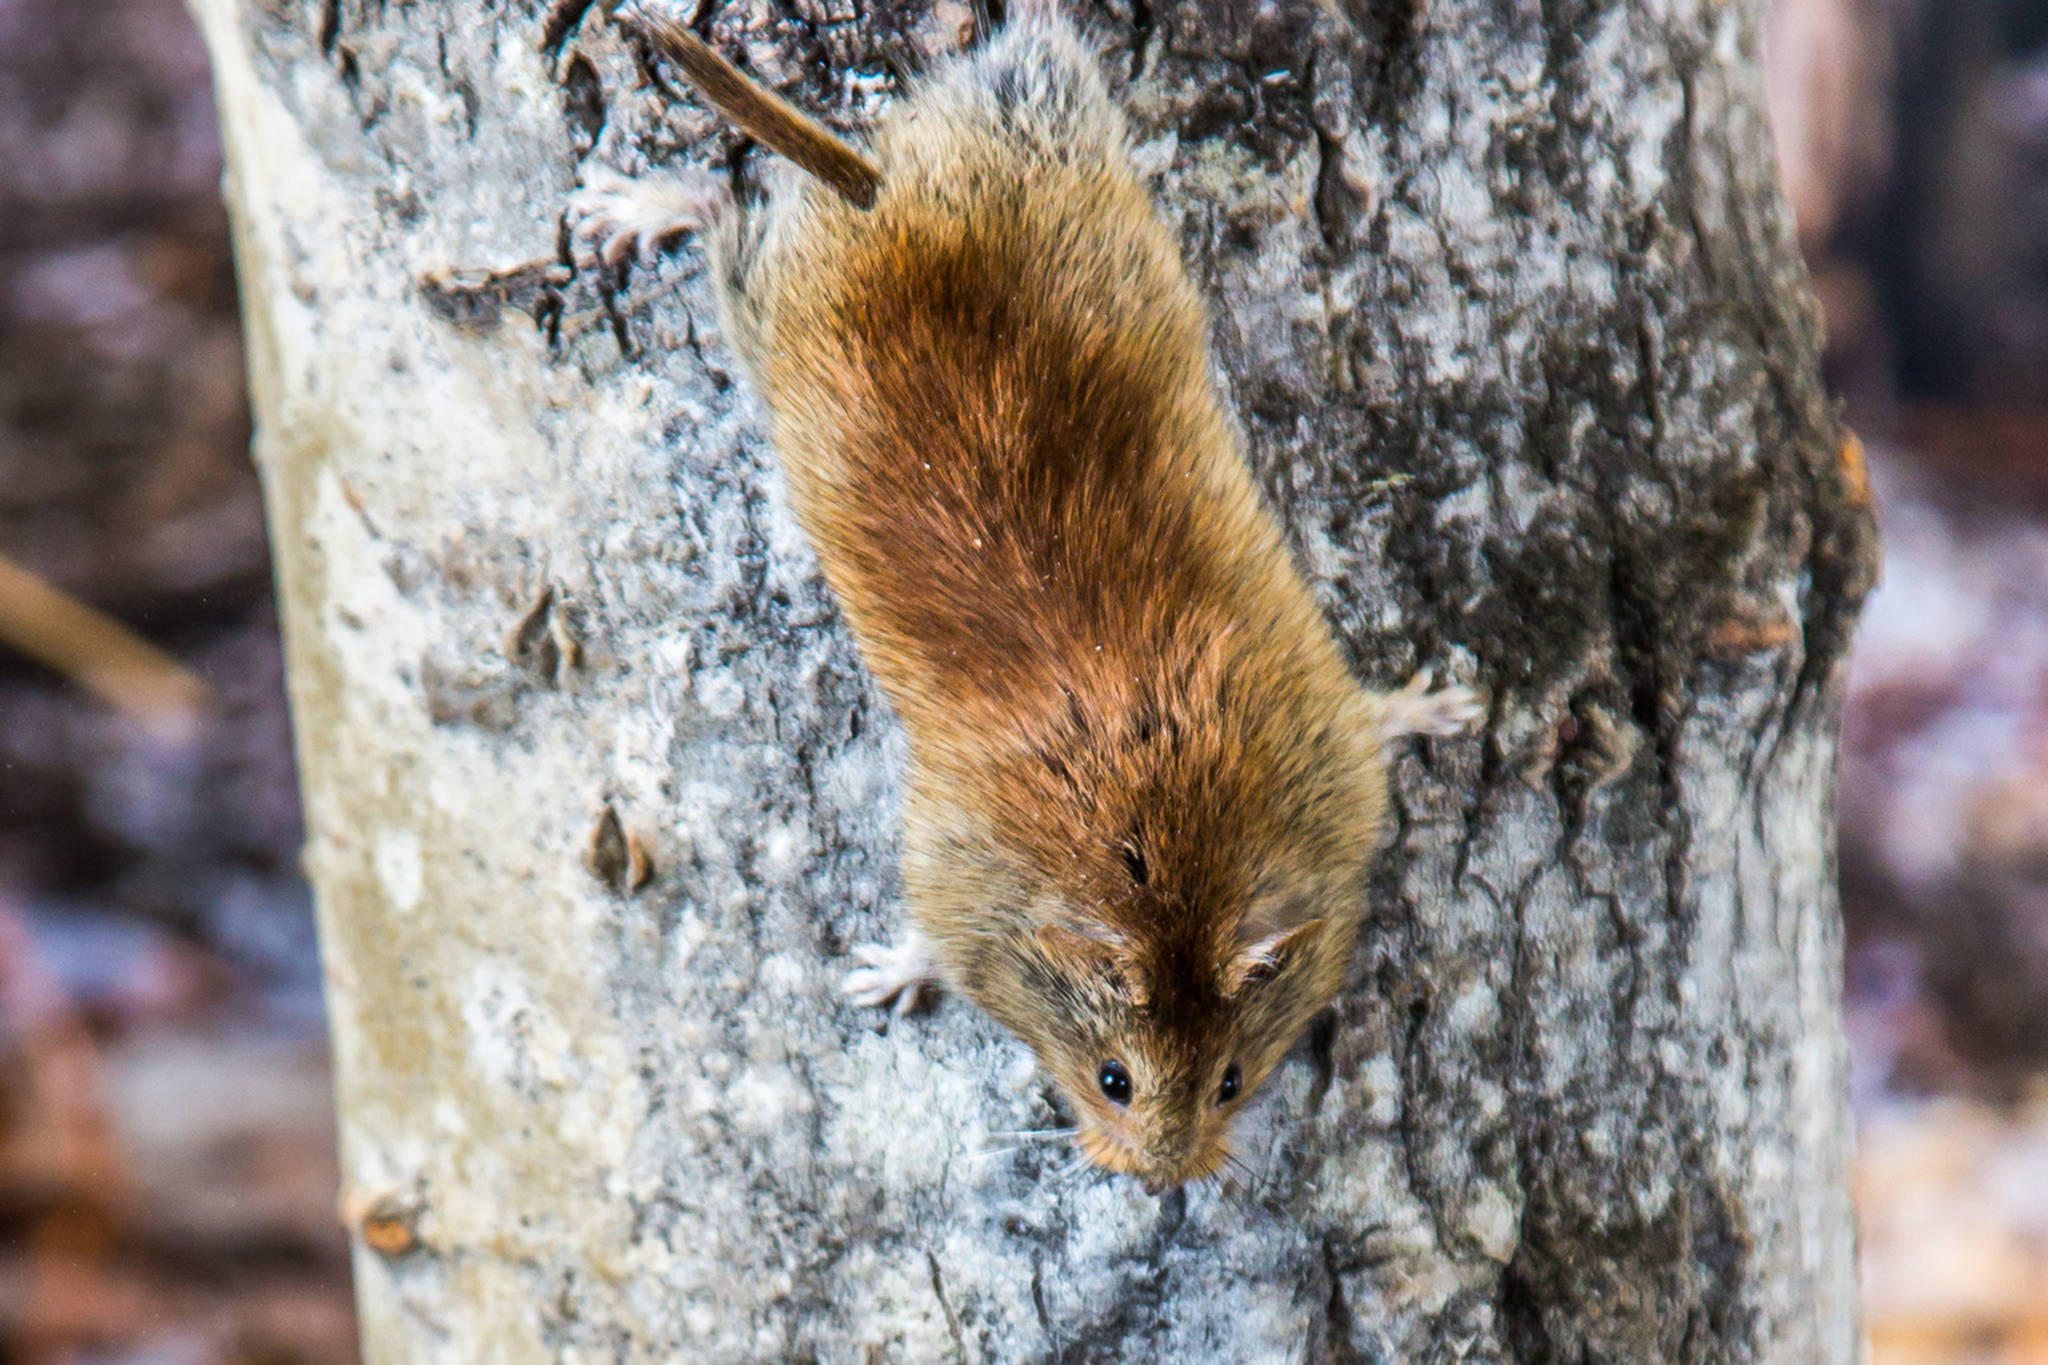 A northern red-backed vole climbing down a tree. (Courtesy Photo / Todd Paris, UAF)